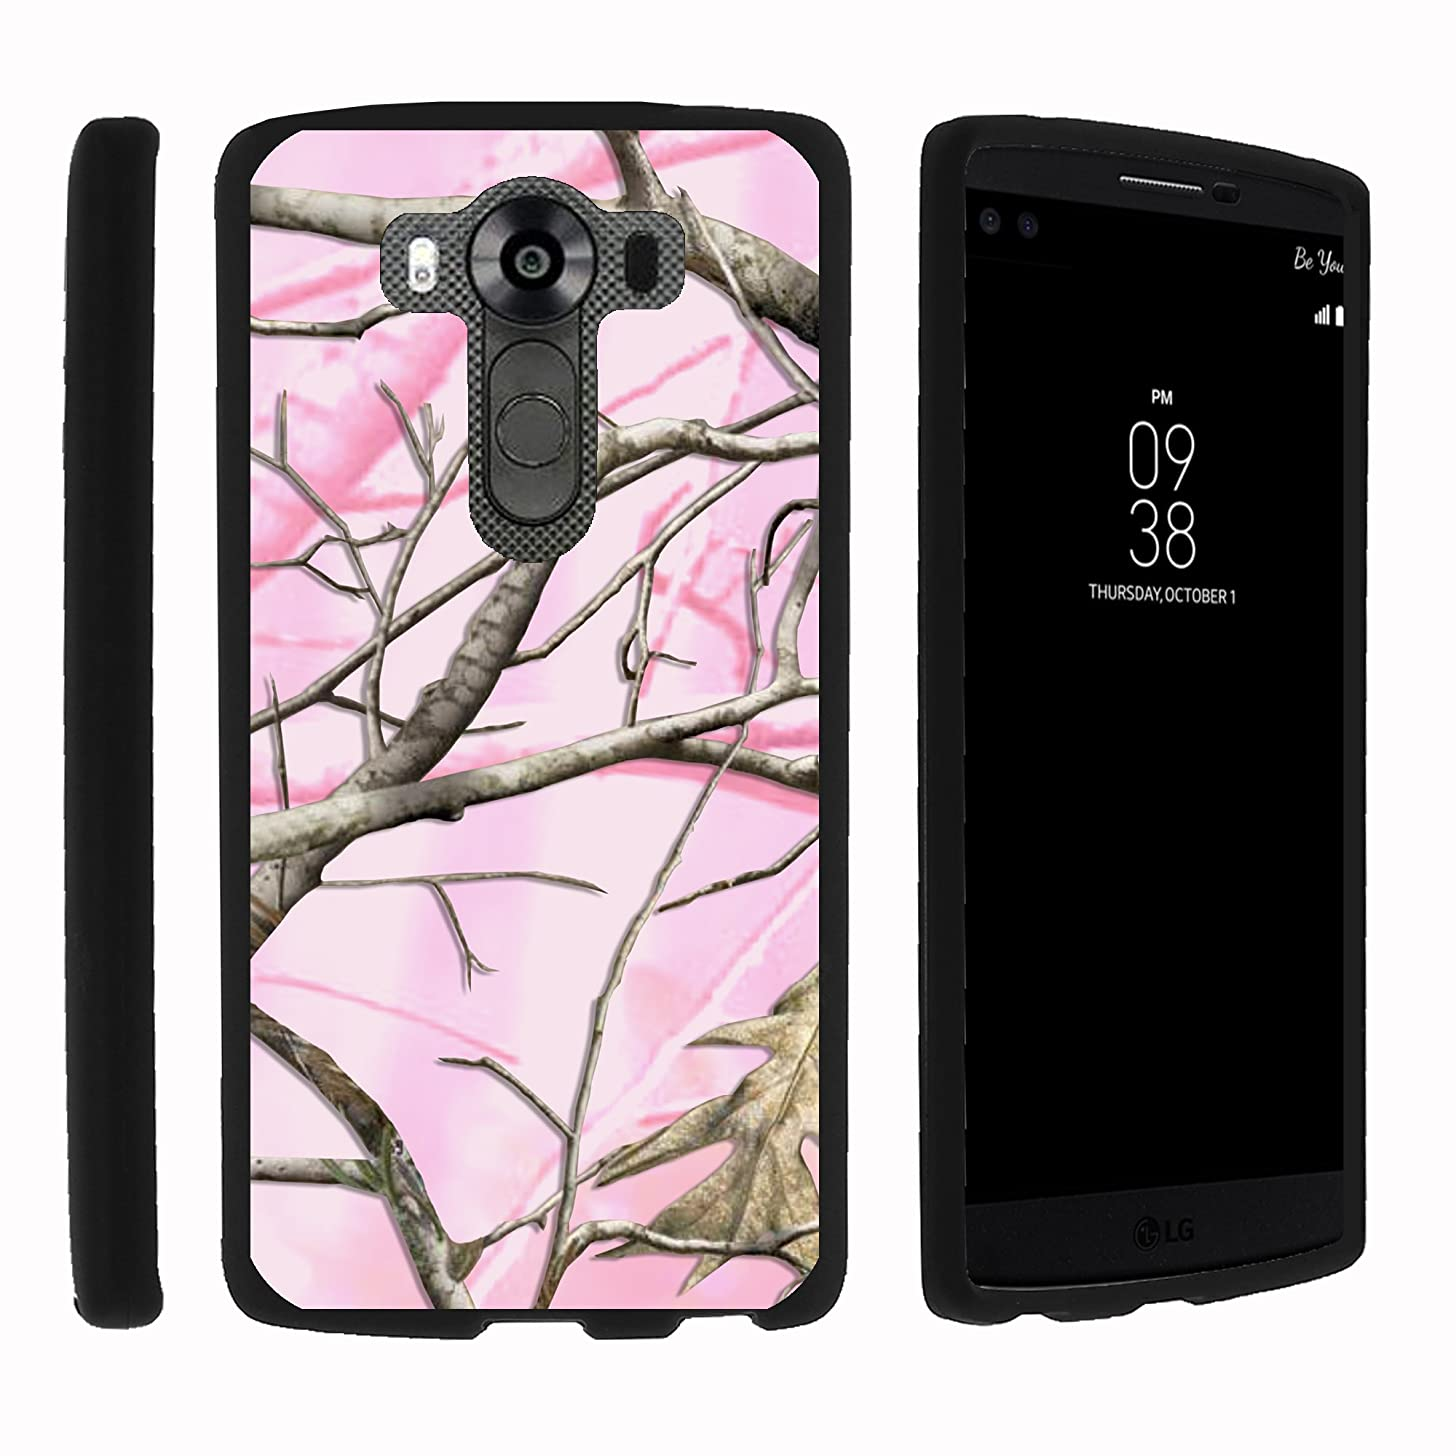 MINITURTLE Case Compatible w/ LG V10 Phone Case, Stylish Personalized Protective Snap On Hard Case Phone Protector for V10 Pink Hunter Camouflage